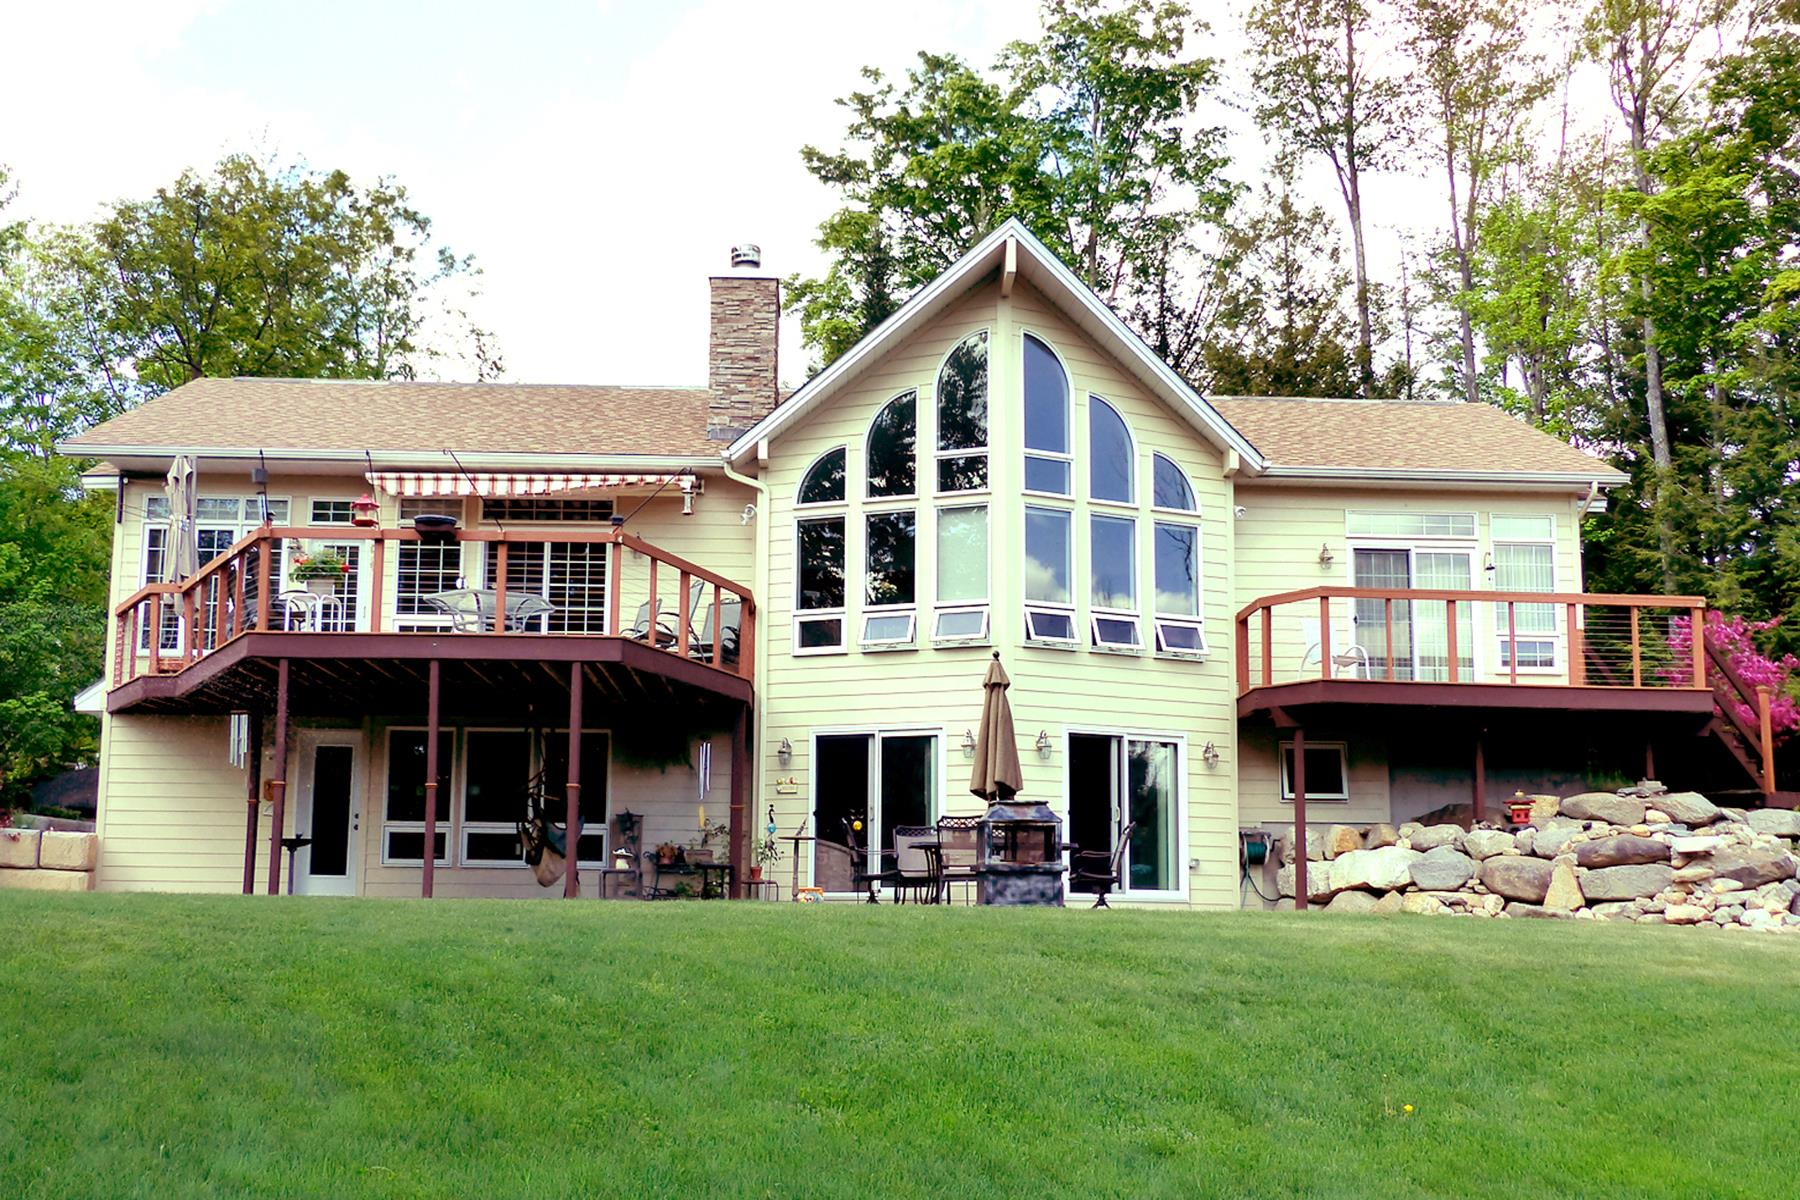 Single Family Home for Sale at 153 Timmothy, Sunapee Sunapee, New Hampshire, 03782 United States